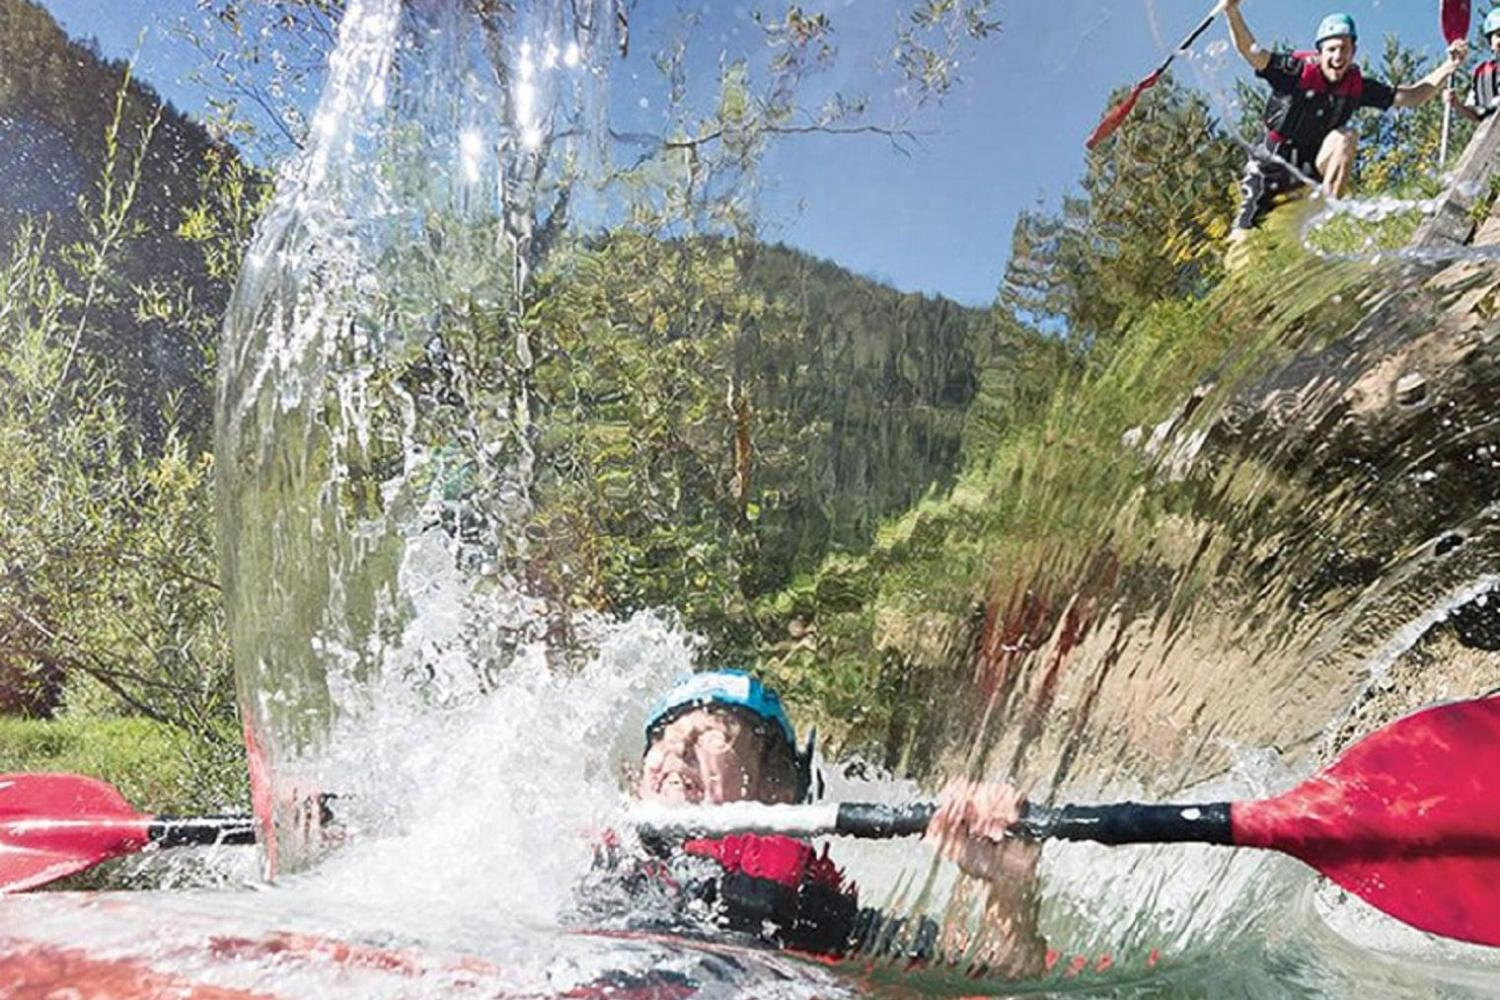 Multi-activity holiday in the Austrian Alps